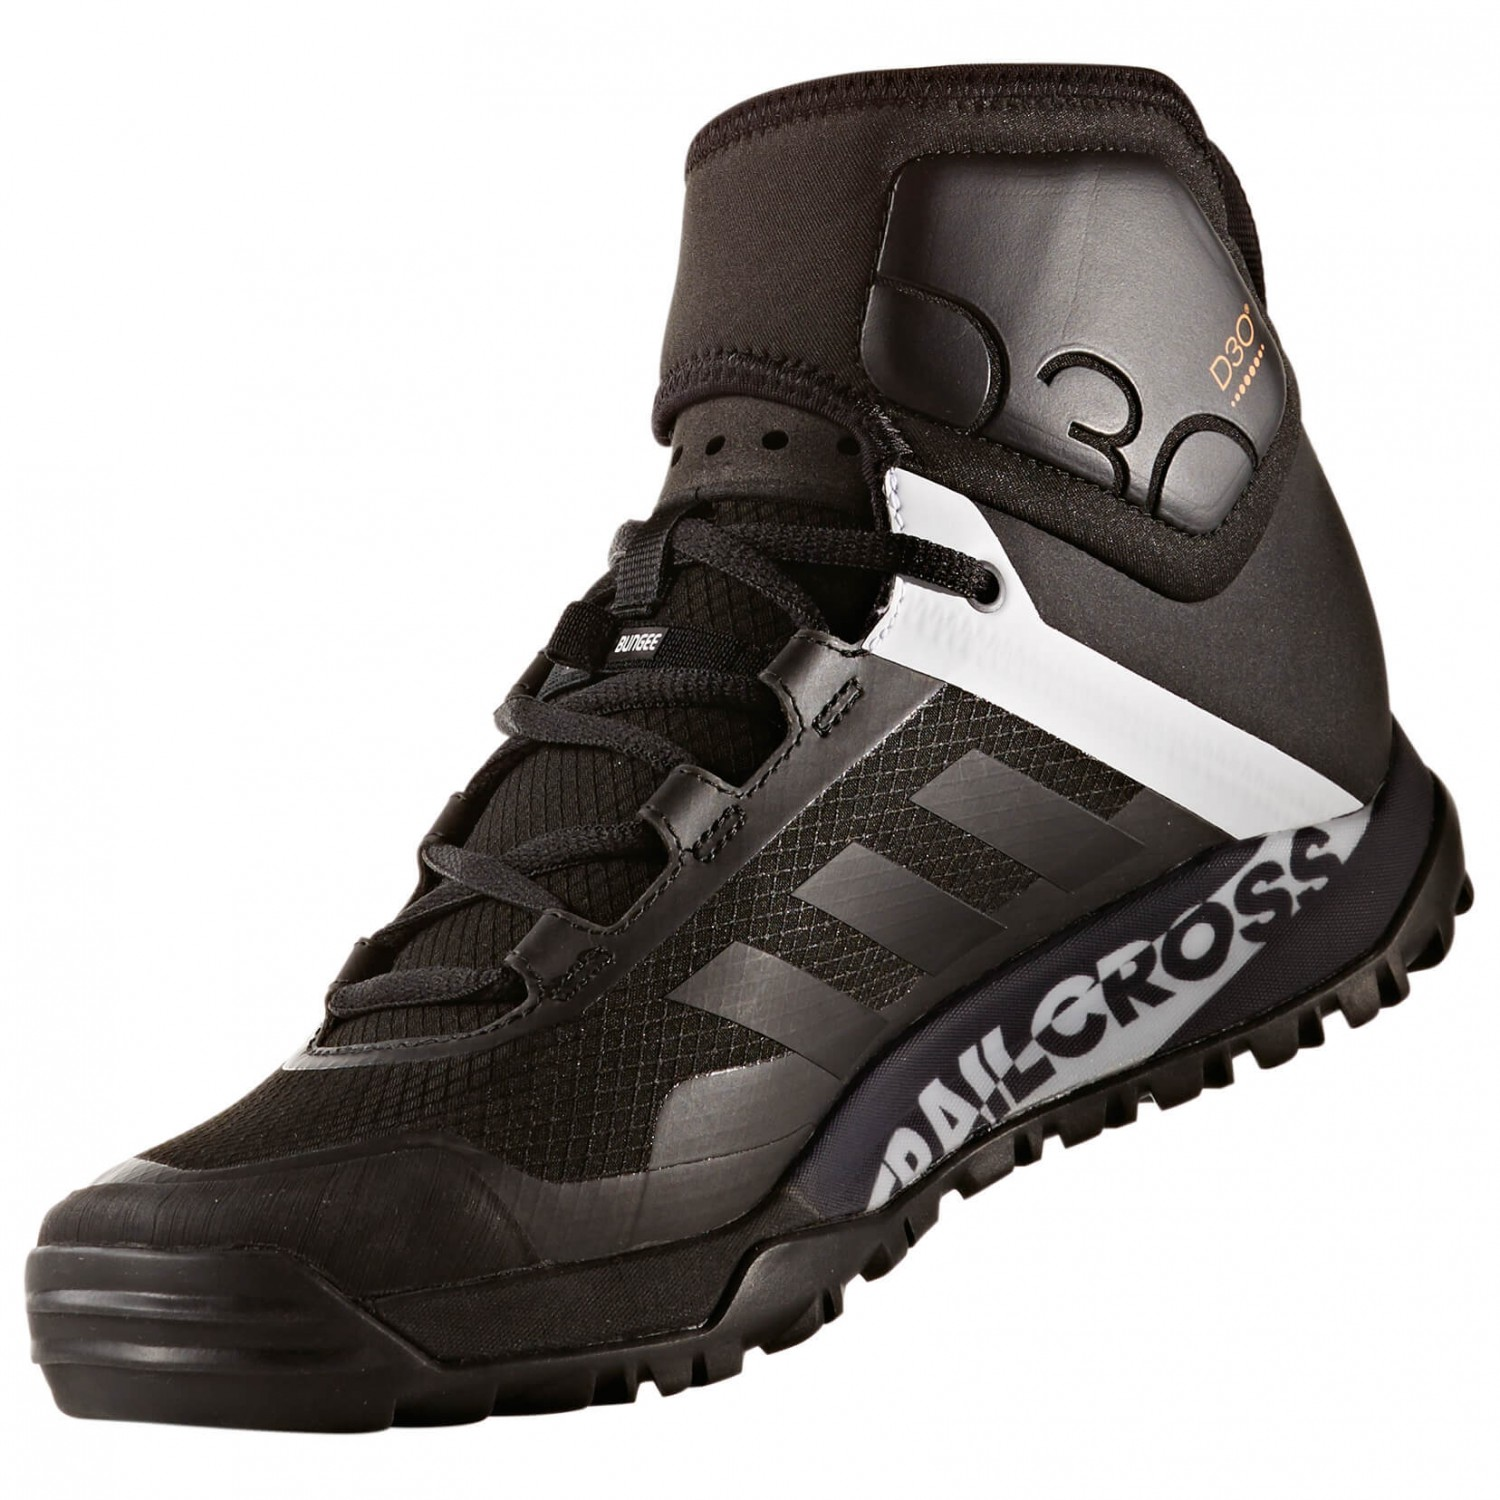 F10 Navy7 5uk Protect Collegiate Terrex Black Cross Trail Chaussures Adidas Blue De Cyclisme Beauty Core qSUzMVp